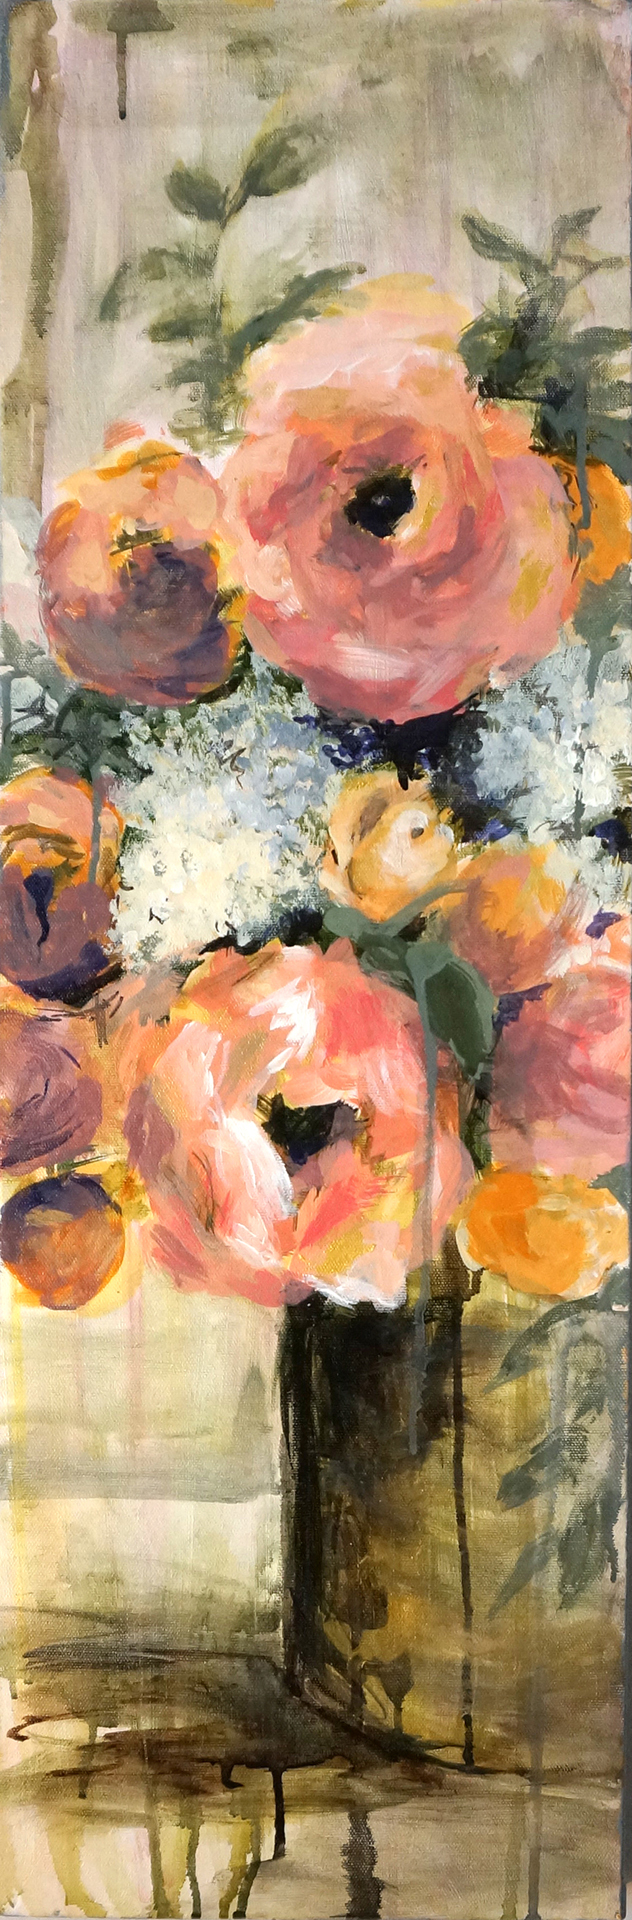 F - Peachy_ Flowers_ Kaitlin Merchant Davison Art - LOW Res 1920.jpg